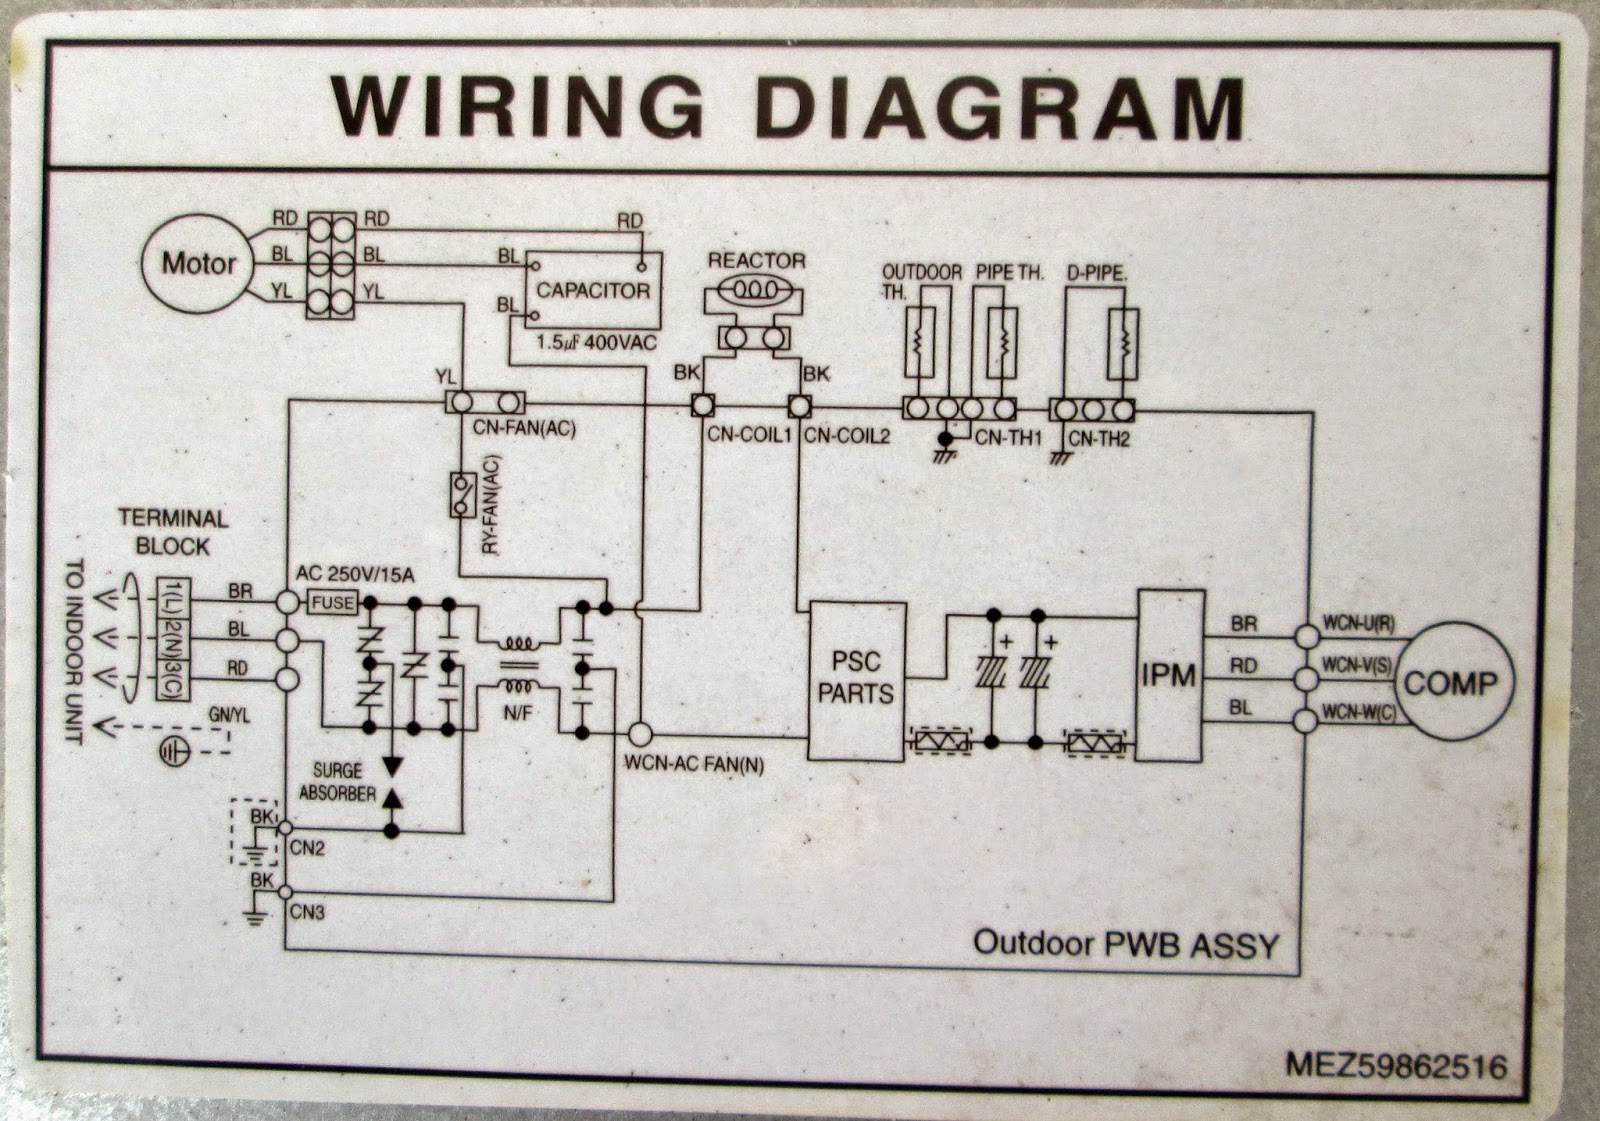 piping diagram ac wiring diagram mega marine air systems wiring diagram [ 1600 x 1121 Pixel ]